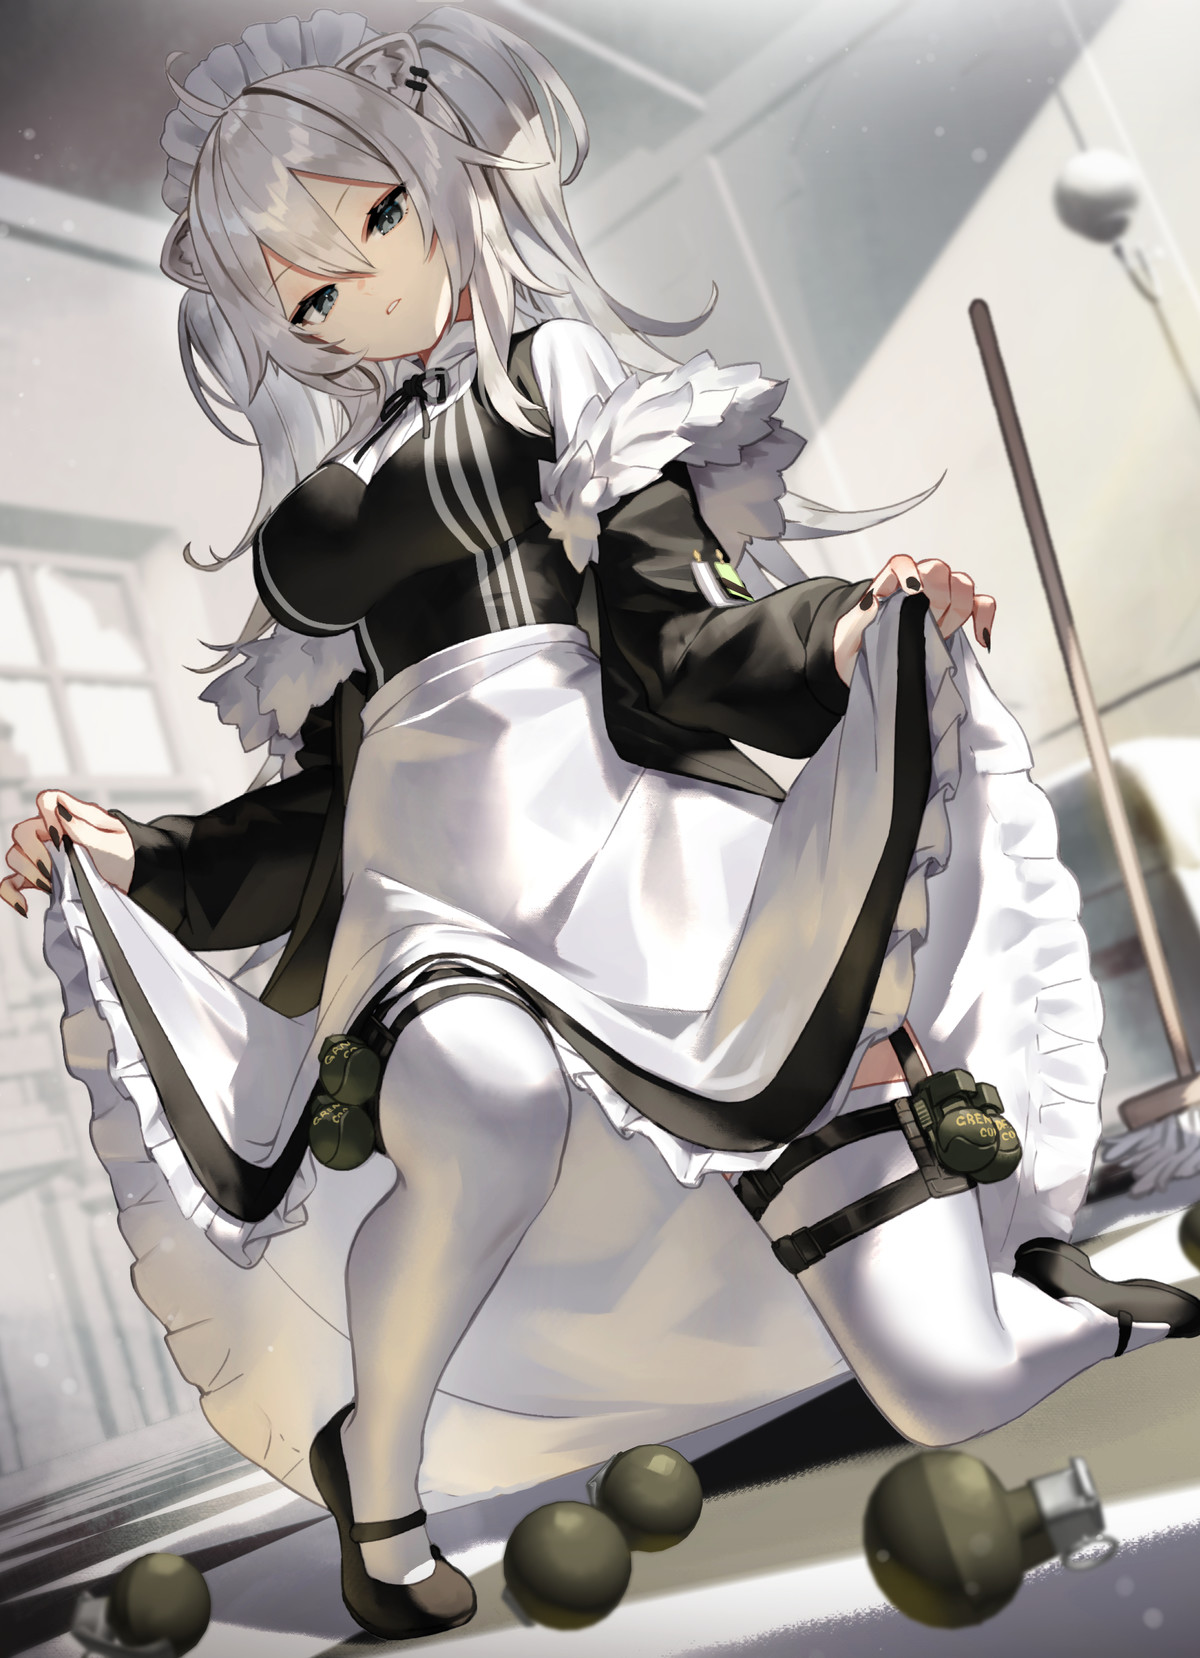 Maid March part 10. join list: SplendidServants (495 subs)Mention History join list:. Your one job was to clean. Now look what you've done, theres grenades everywhere.